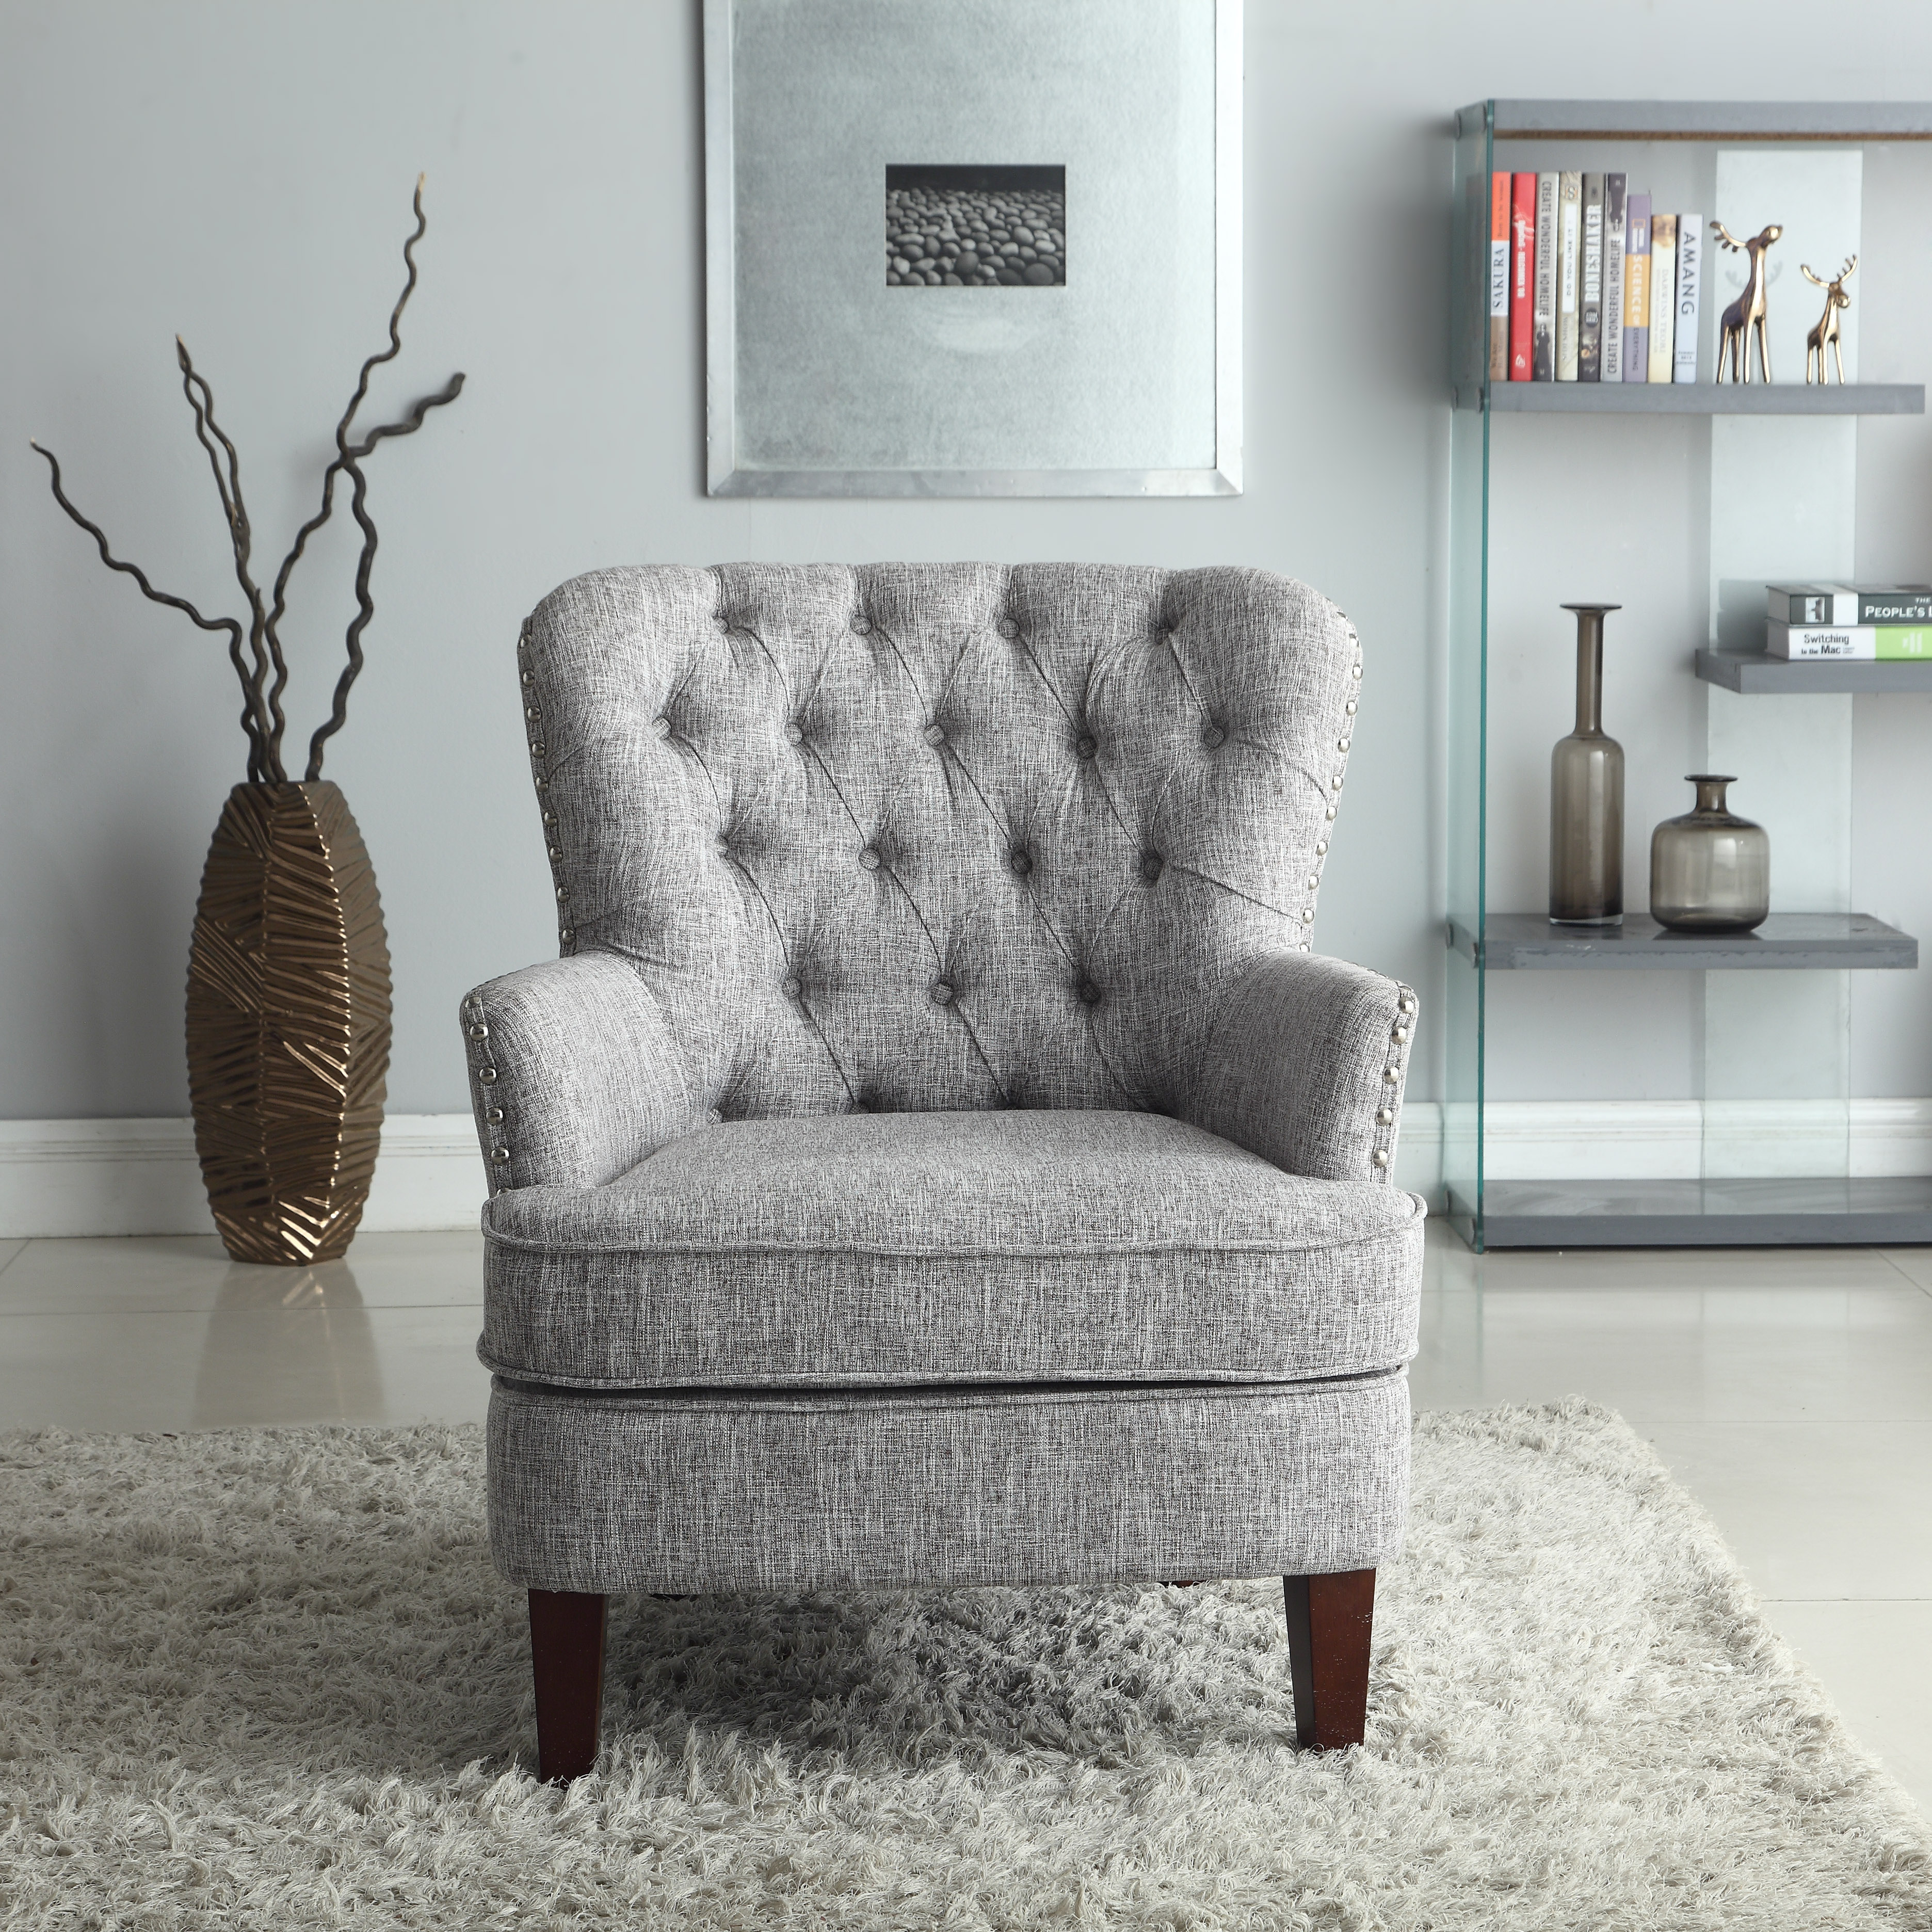 Button Tufted Accent Chair With Nailhead, Gray White Color   Walmart.com